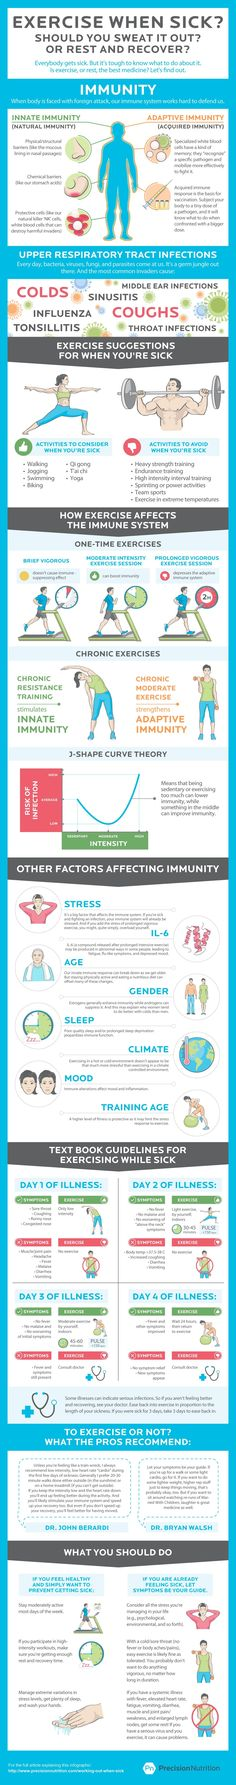 precision nutrition exercise when sick Should you exercise when sick? [Infographic] How to make working out work for your immunity.